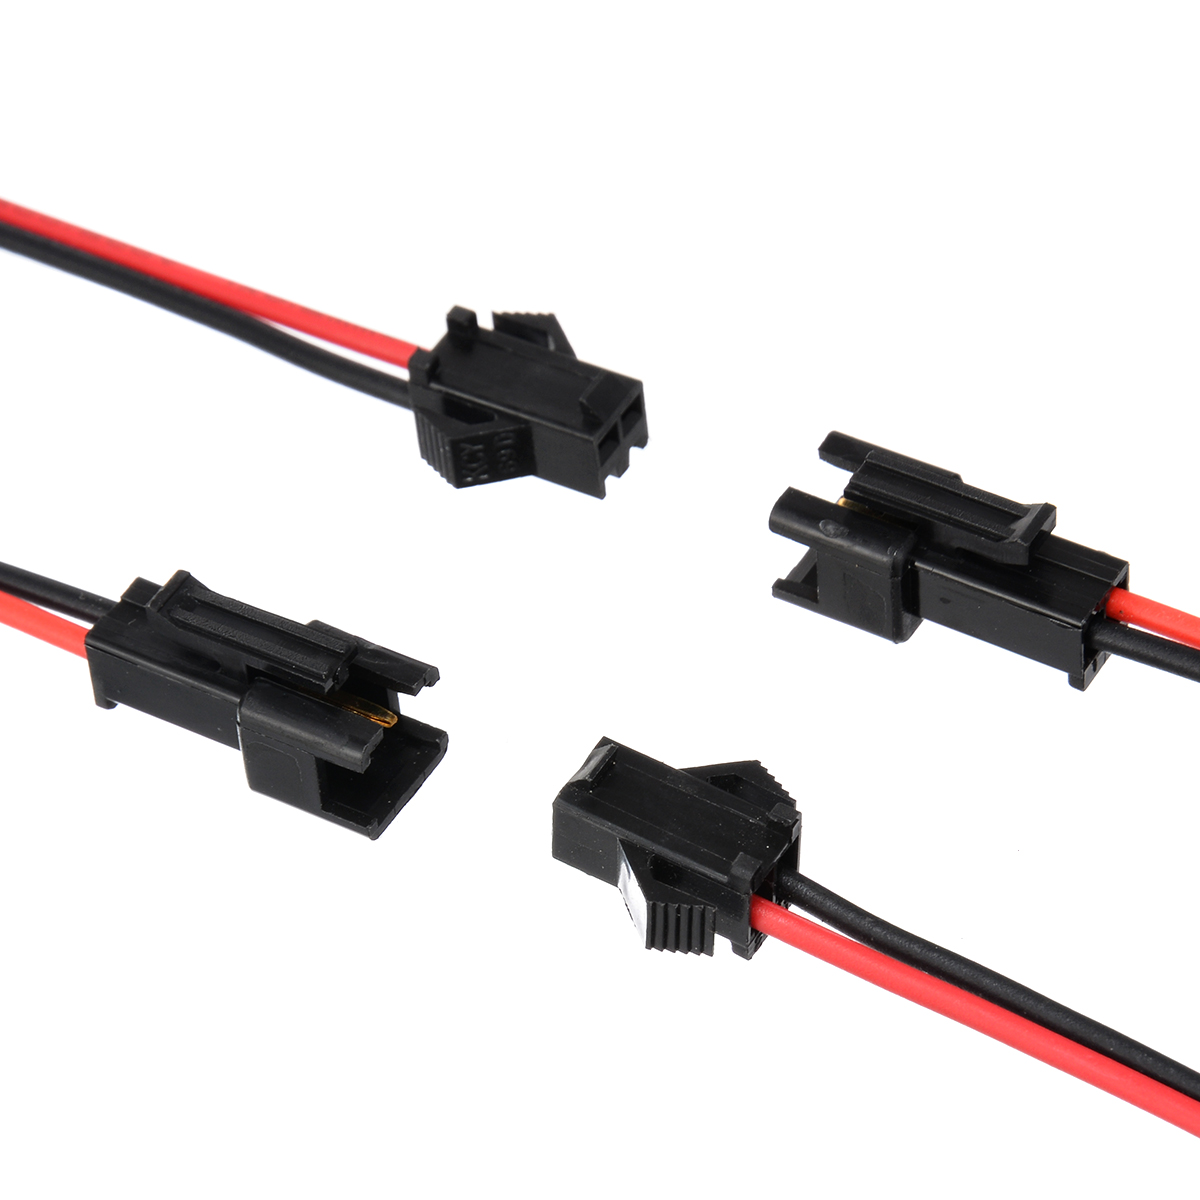 5 Pairs 2 Pin SM Plug Connector Cable Wire Male Female 5 Of Each Connector Mayitr Electrical Wires 100mm Length Mayitr in Connectors from Lights Lighting